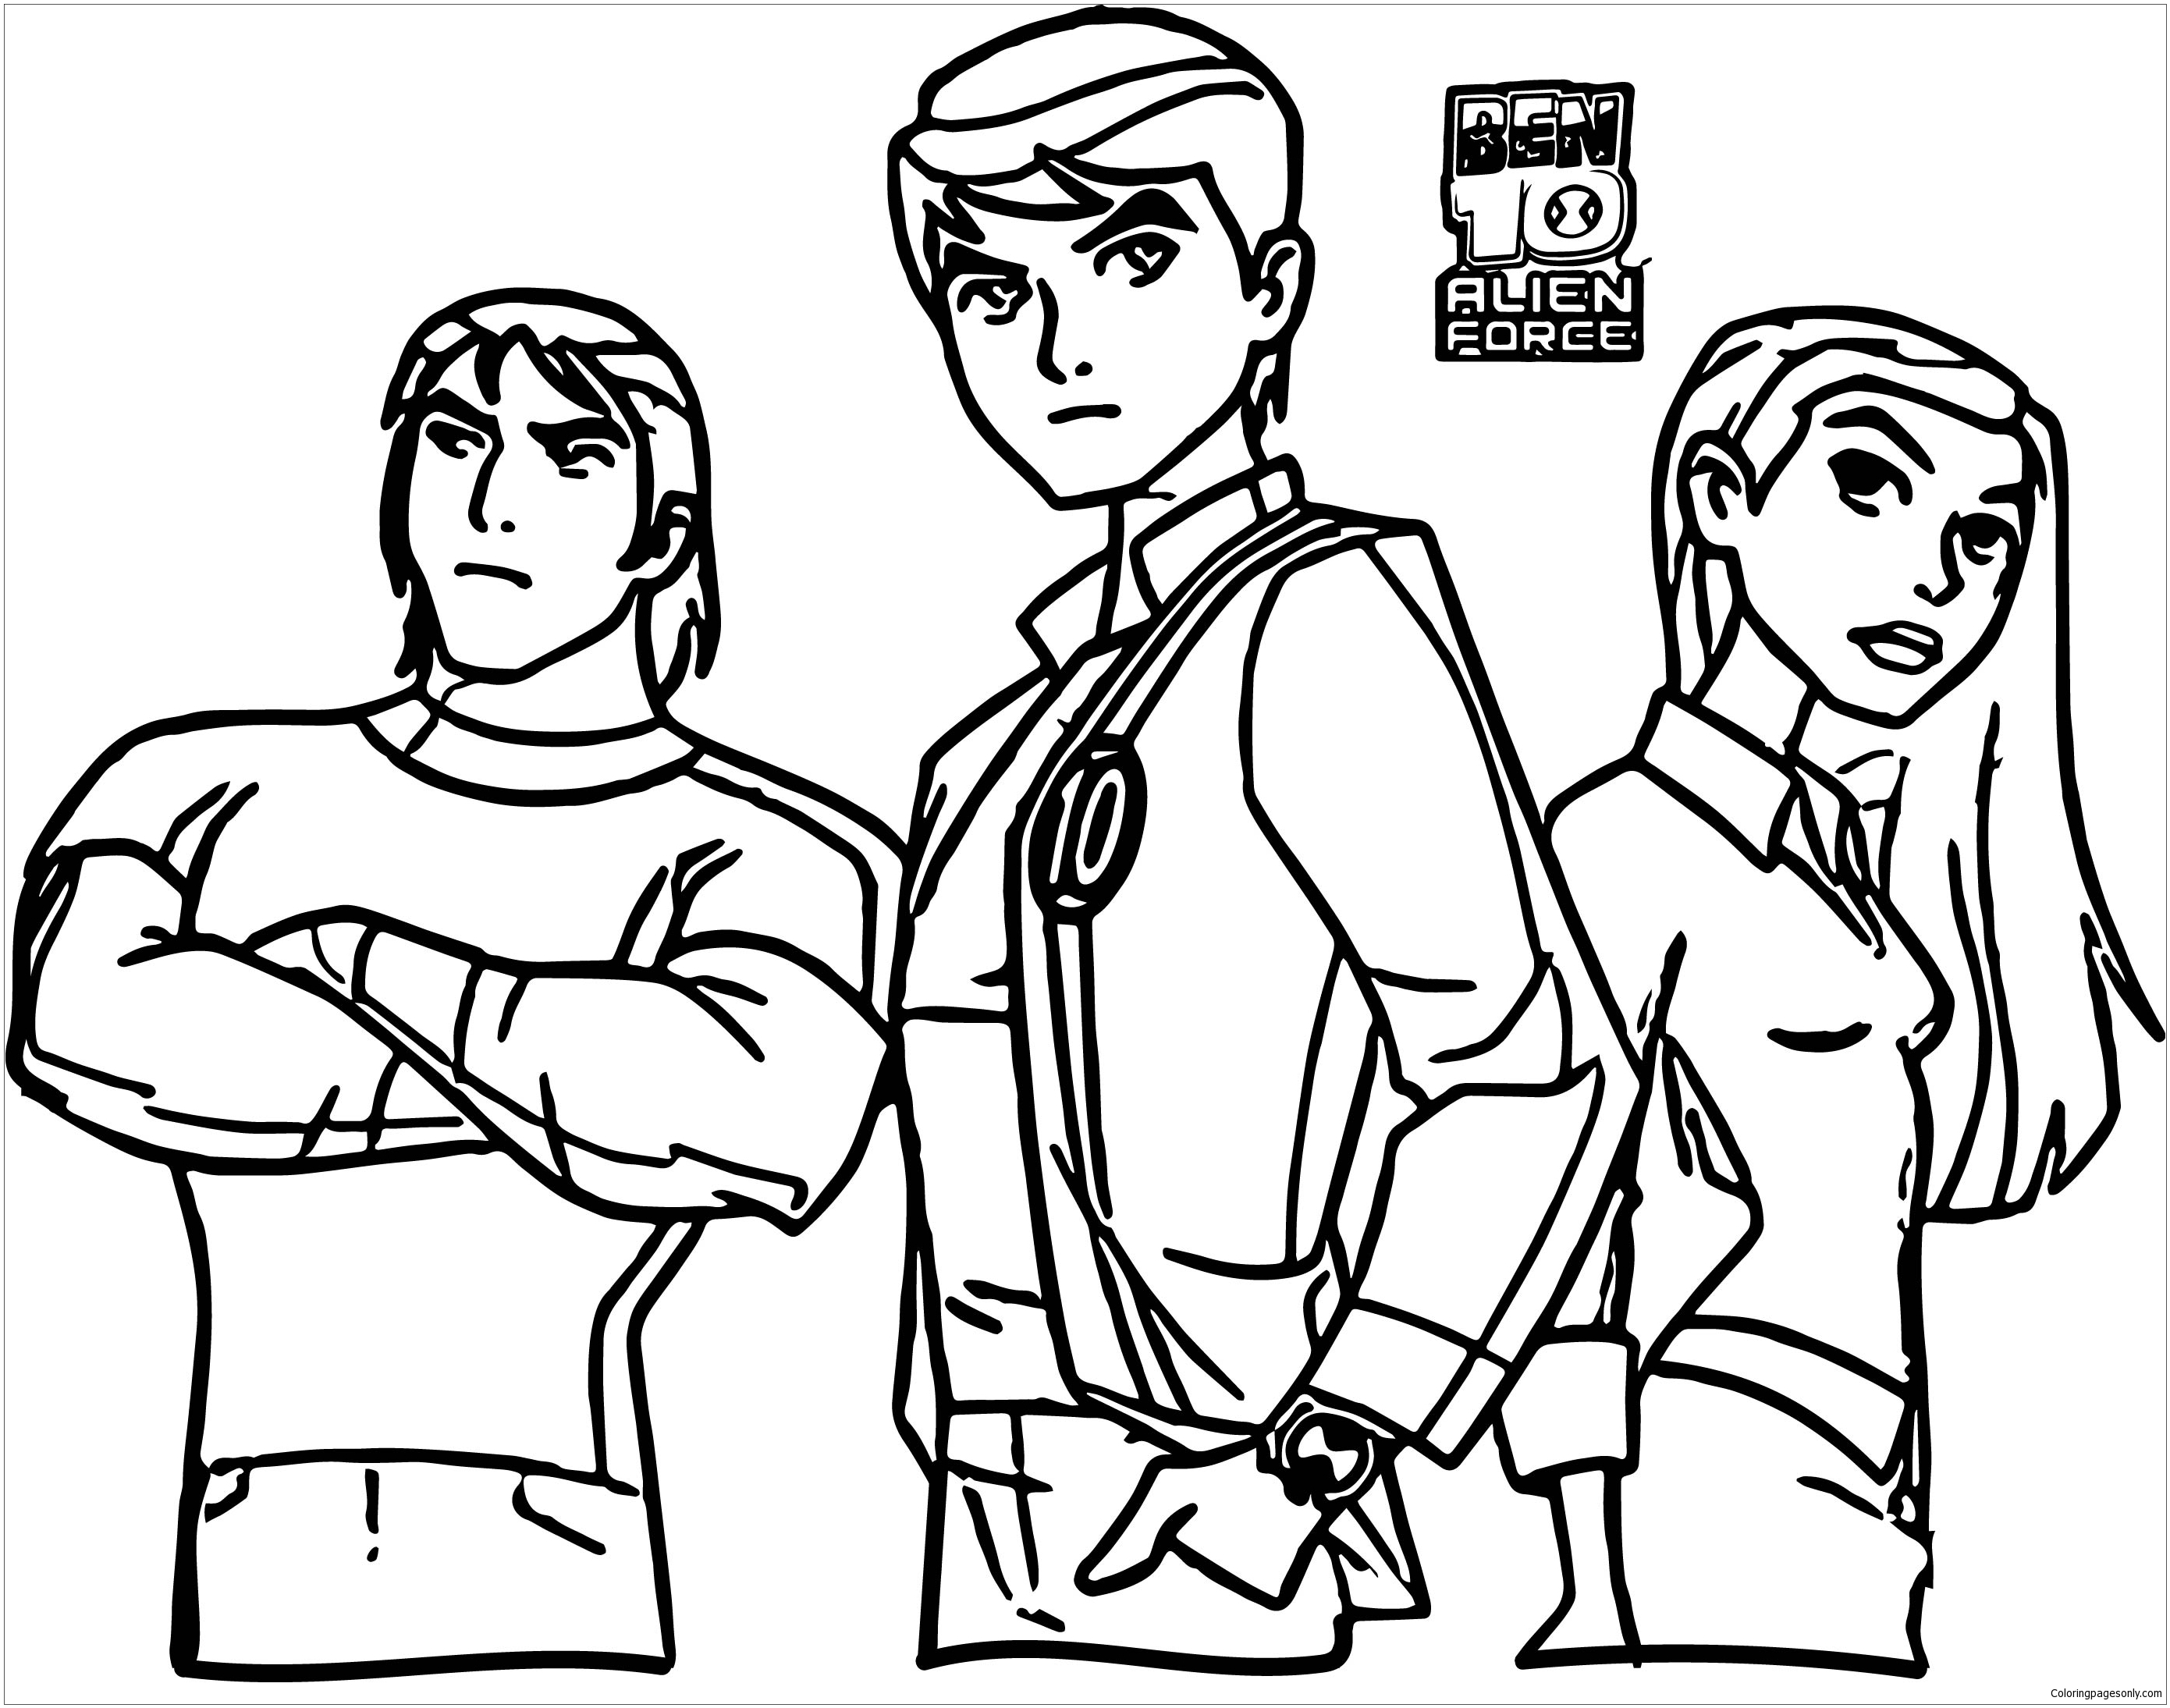 Ben 10 Alien Force Products Coloring Page - Free Coloring ...